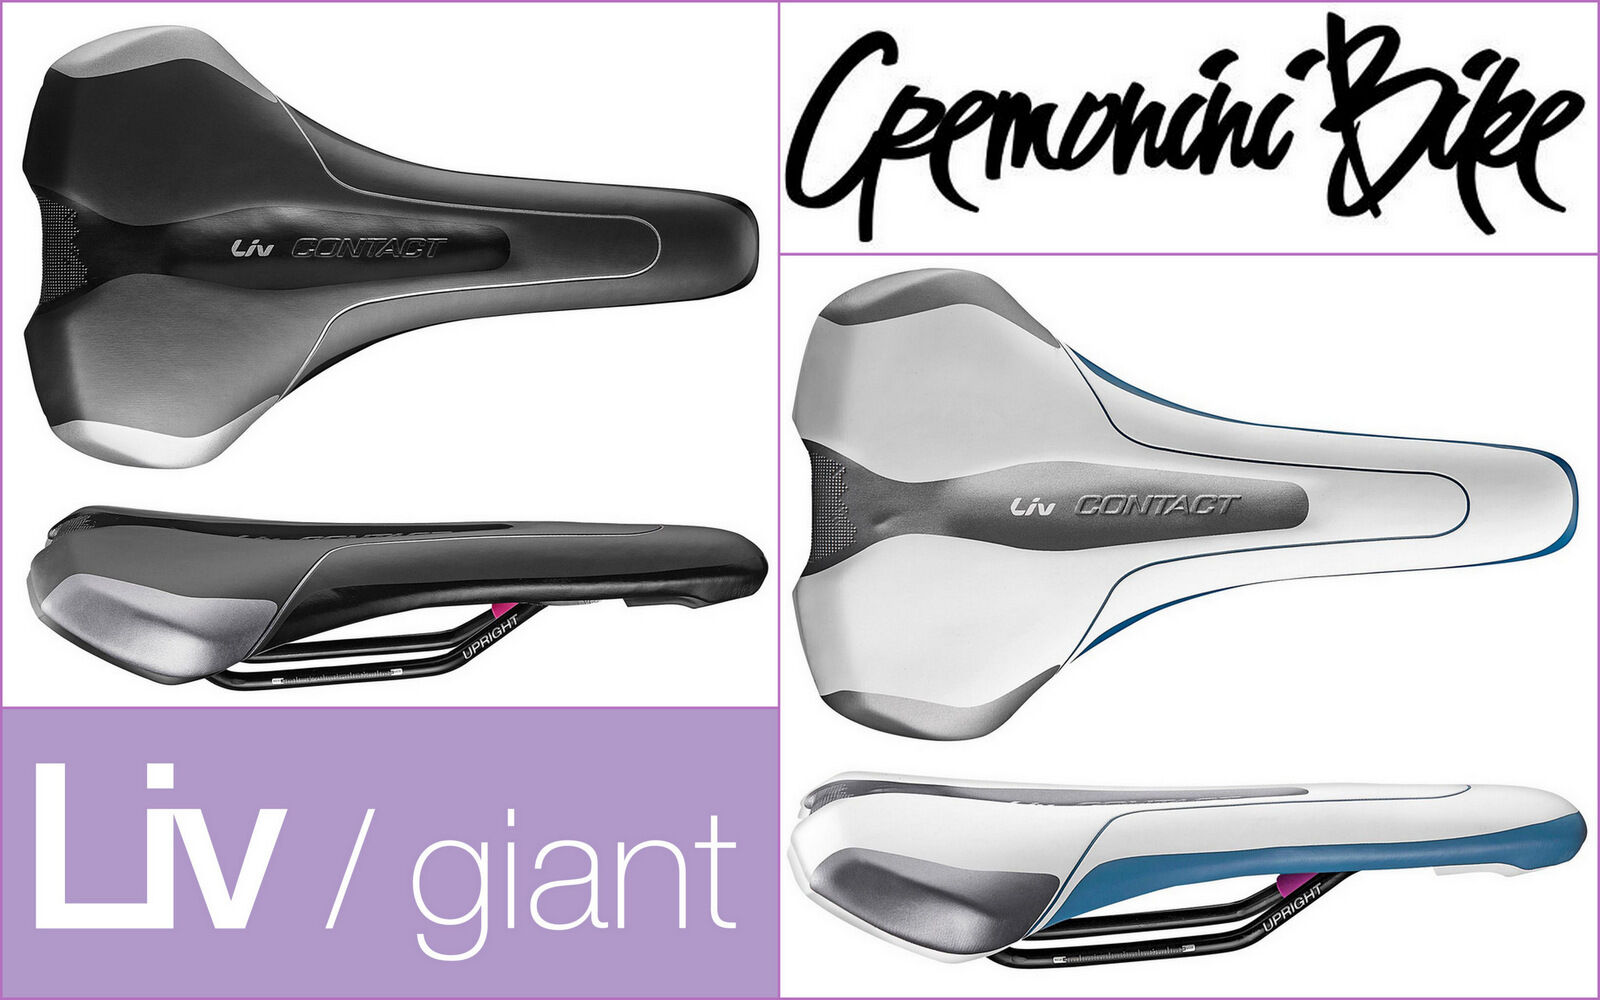 GIANT LIV CONTACT UPRIGHT sella sella sella bici woman bike saddle sellino ciclismo donna f0c438